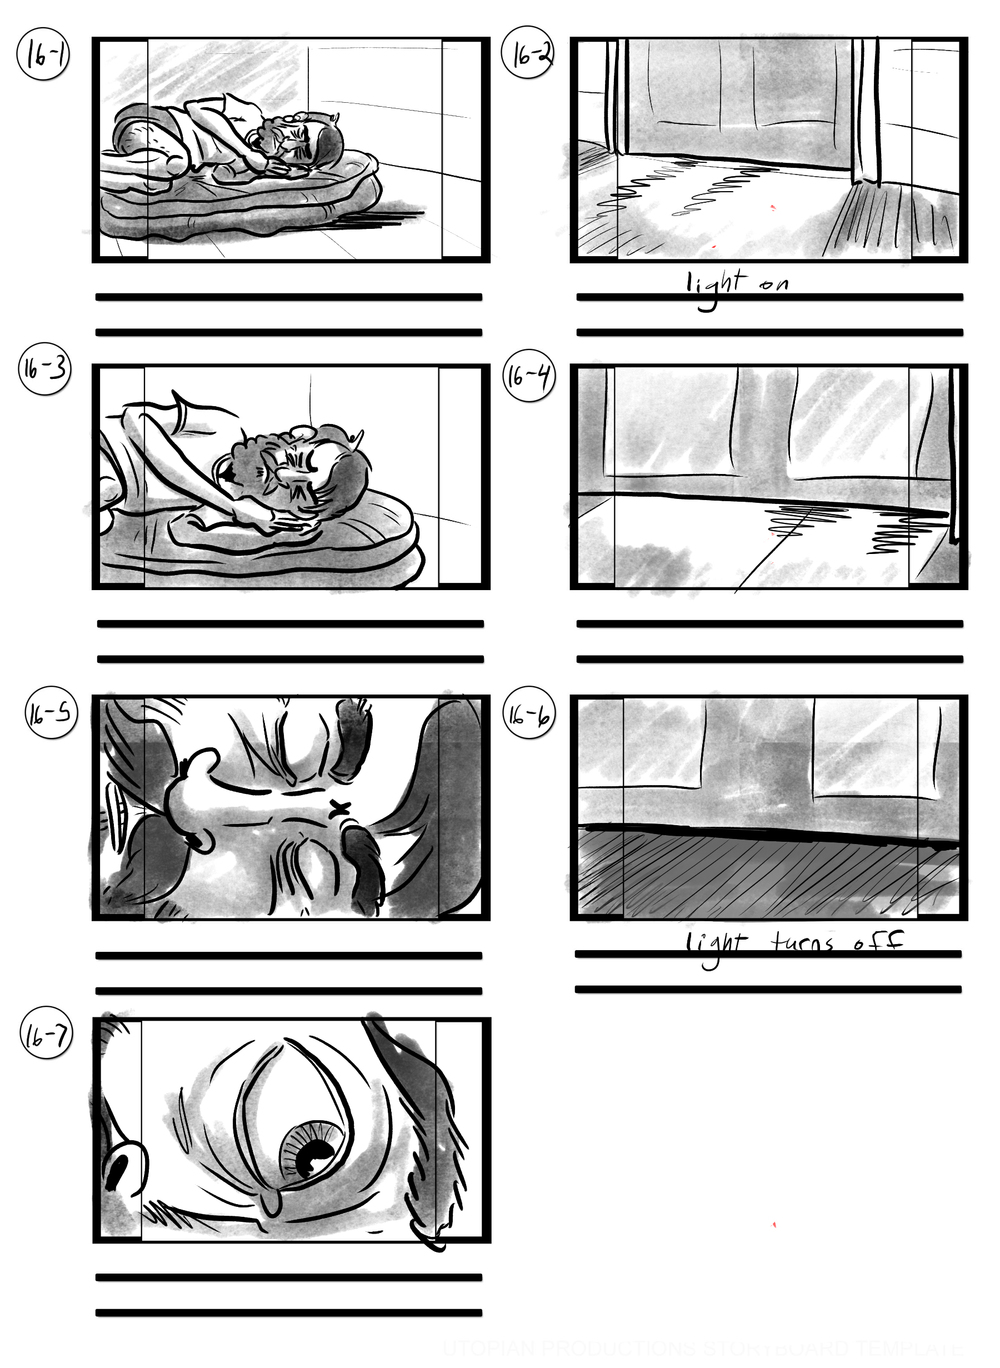 The Dog The Boy storyboard 16-1.jpg